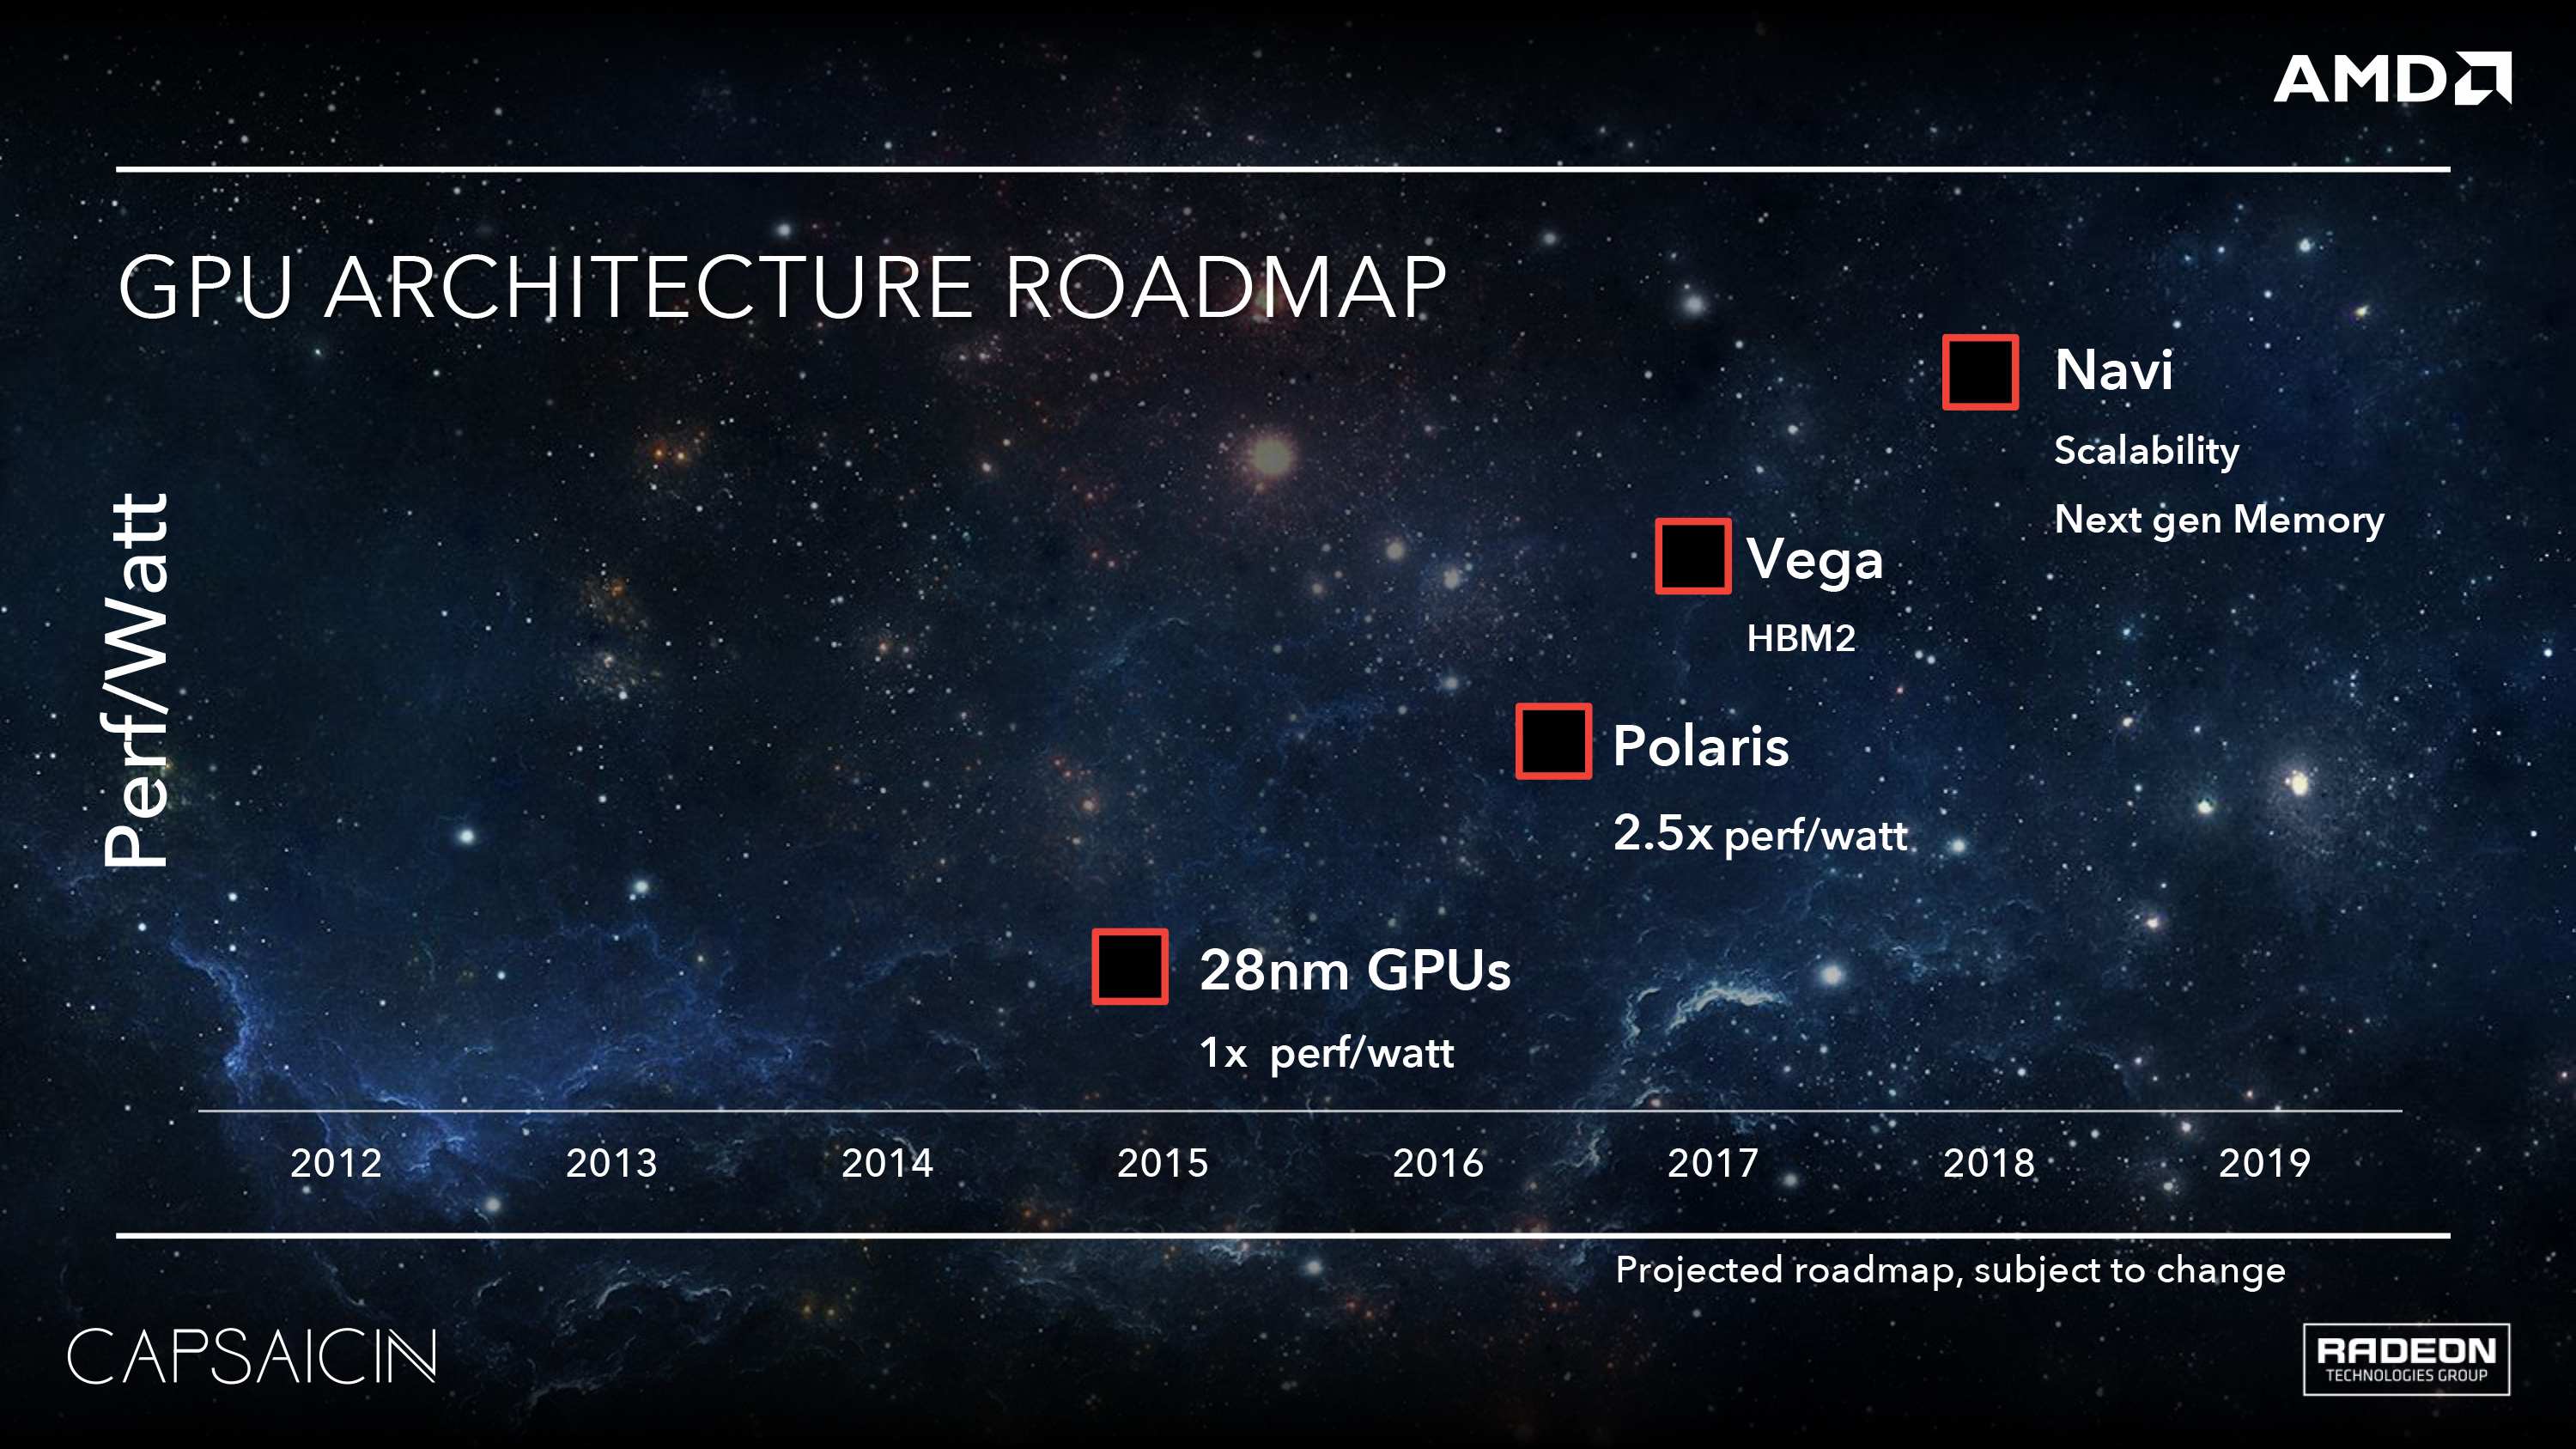 AMD's recent product roadmap indicated that Polaris will be used in mid-range parts.